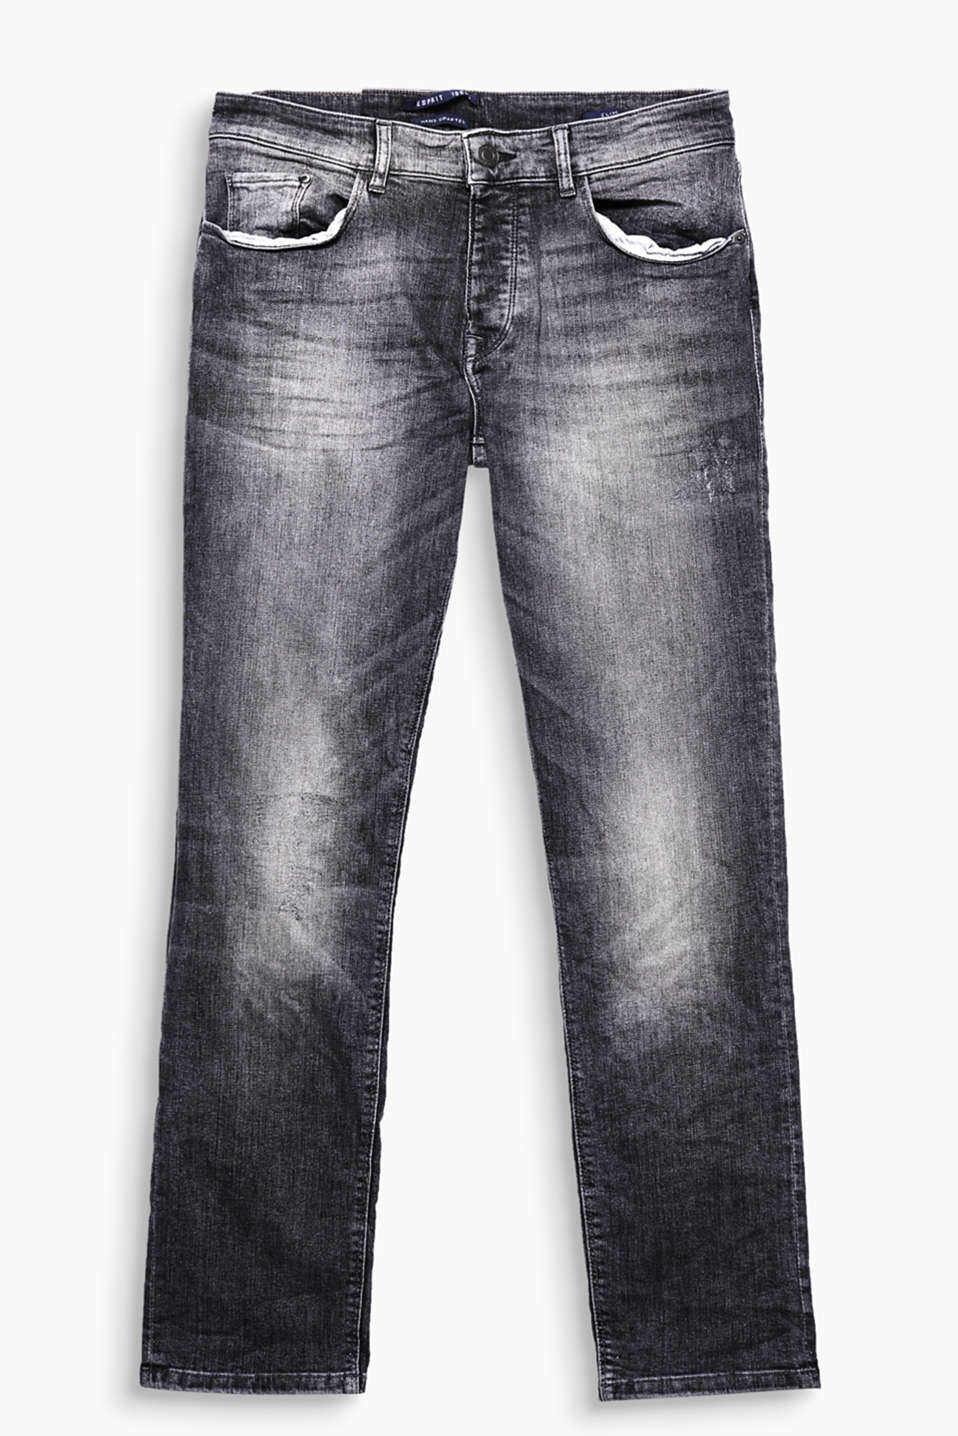 Denim Heritage! Autentiske 5-pocket-jeans med forvaskede og destroyed-effekter